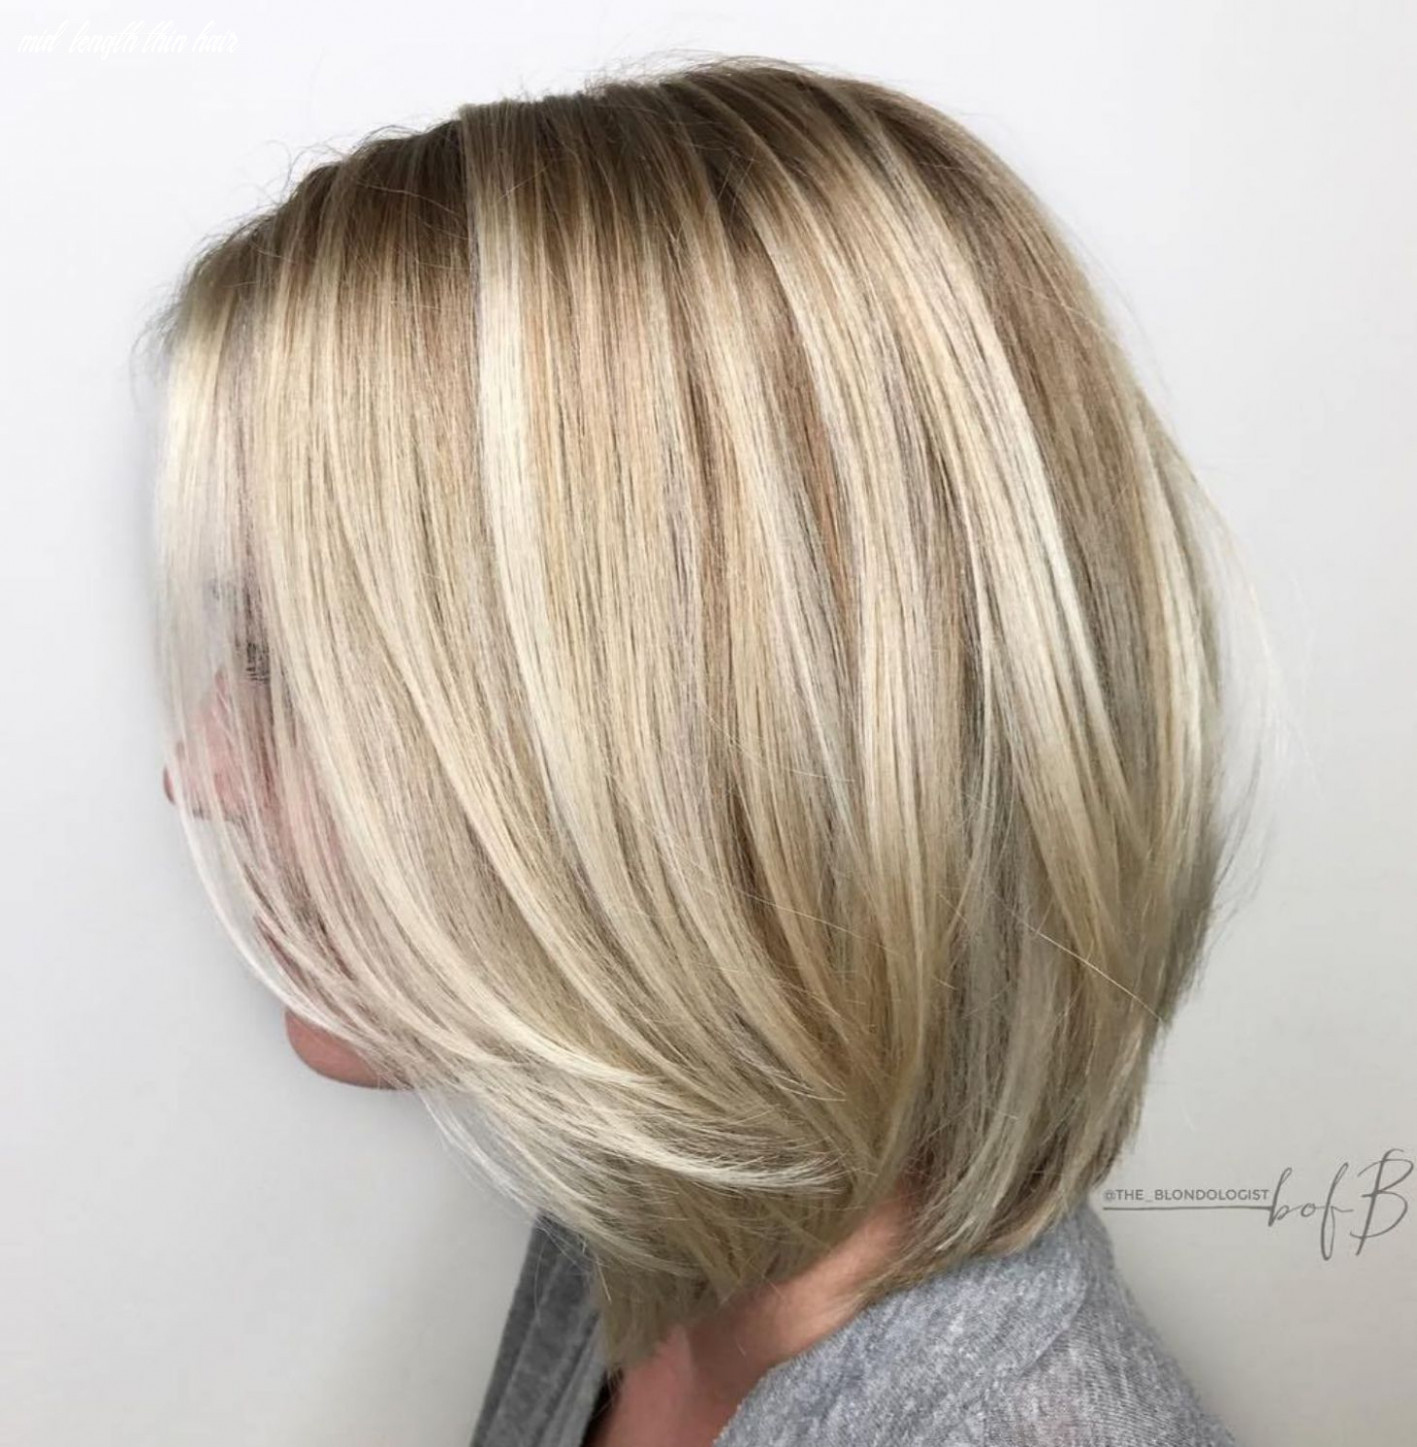 12 winning looks with bob haircuts for fine hair | bob haircut for